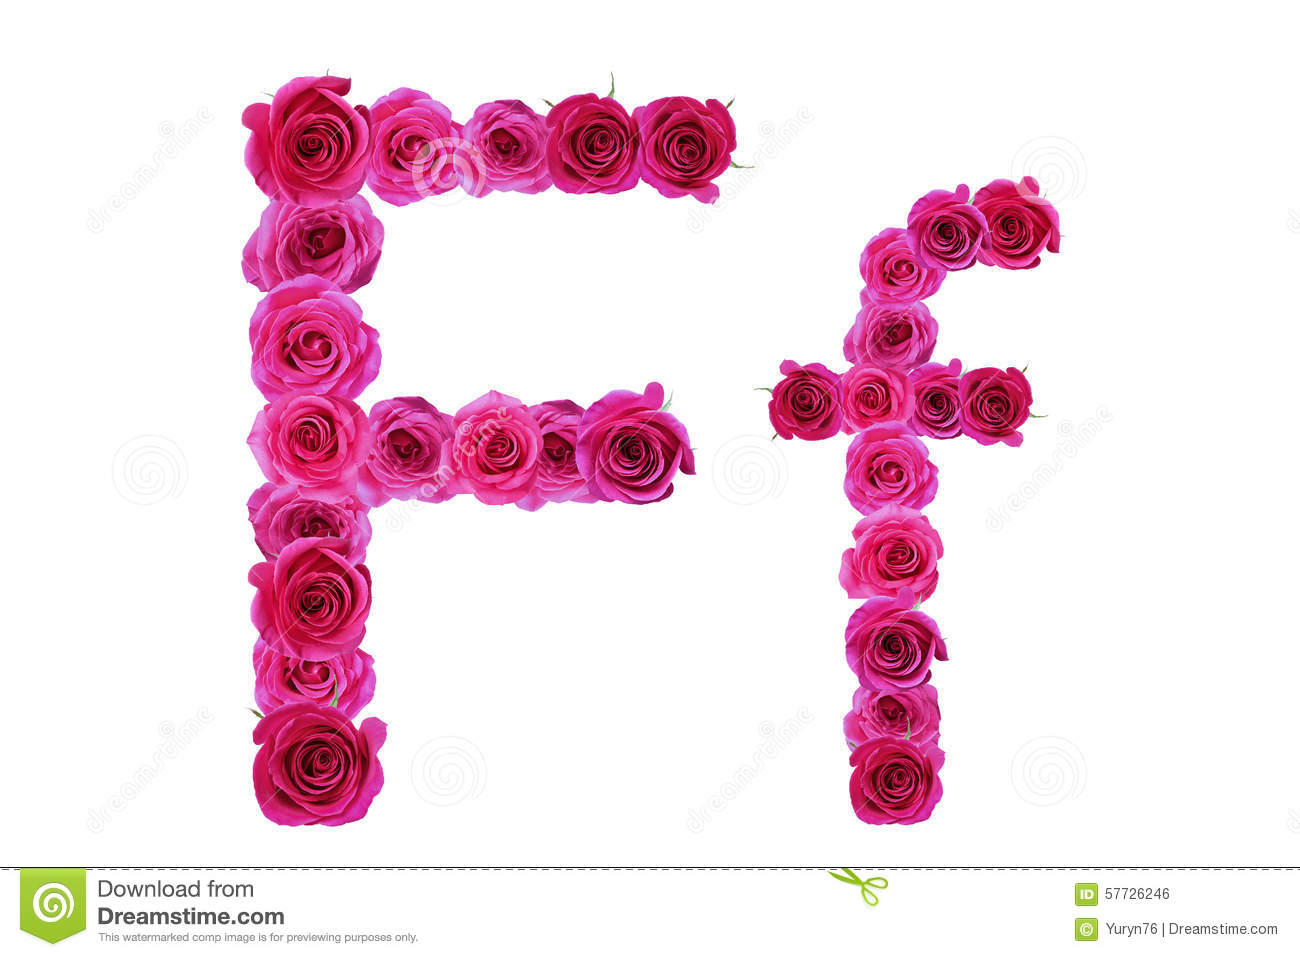 Letter F Of Roses Stock Photo - Image: 57726246